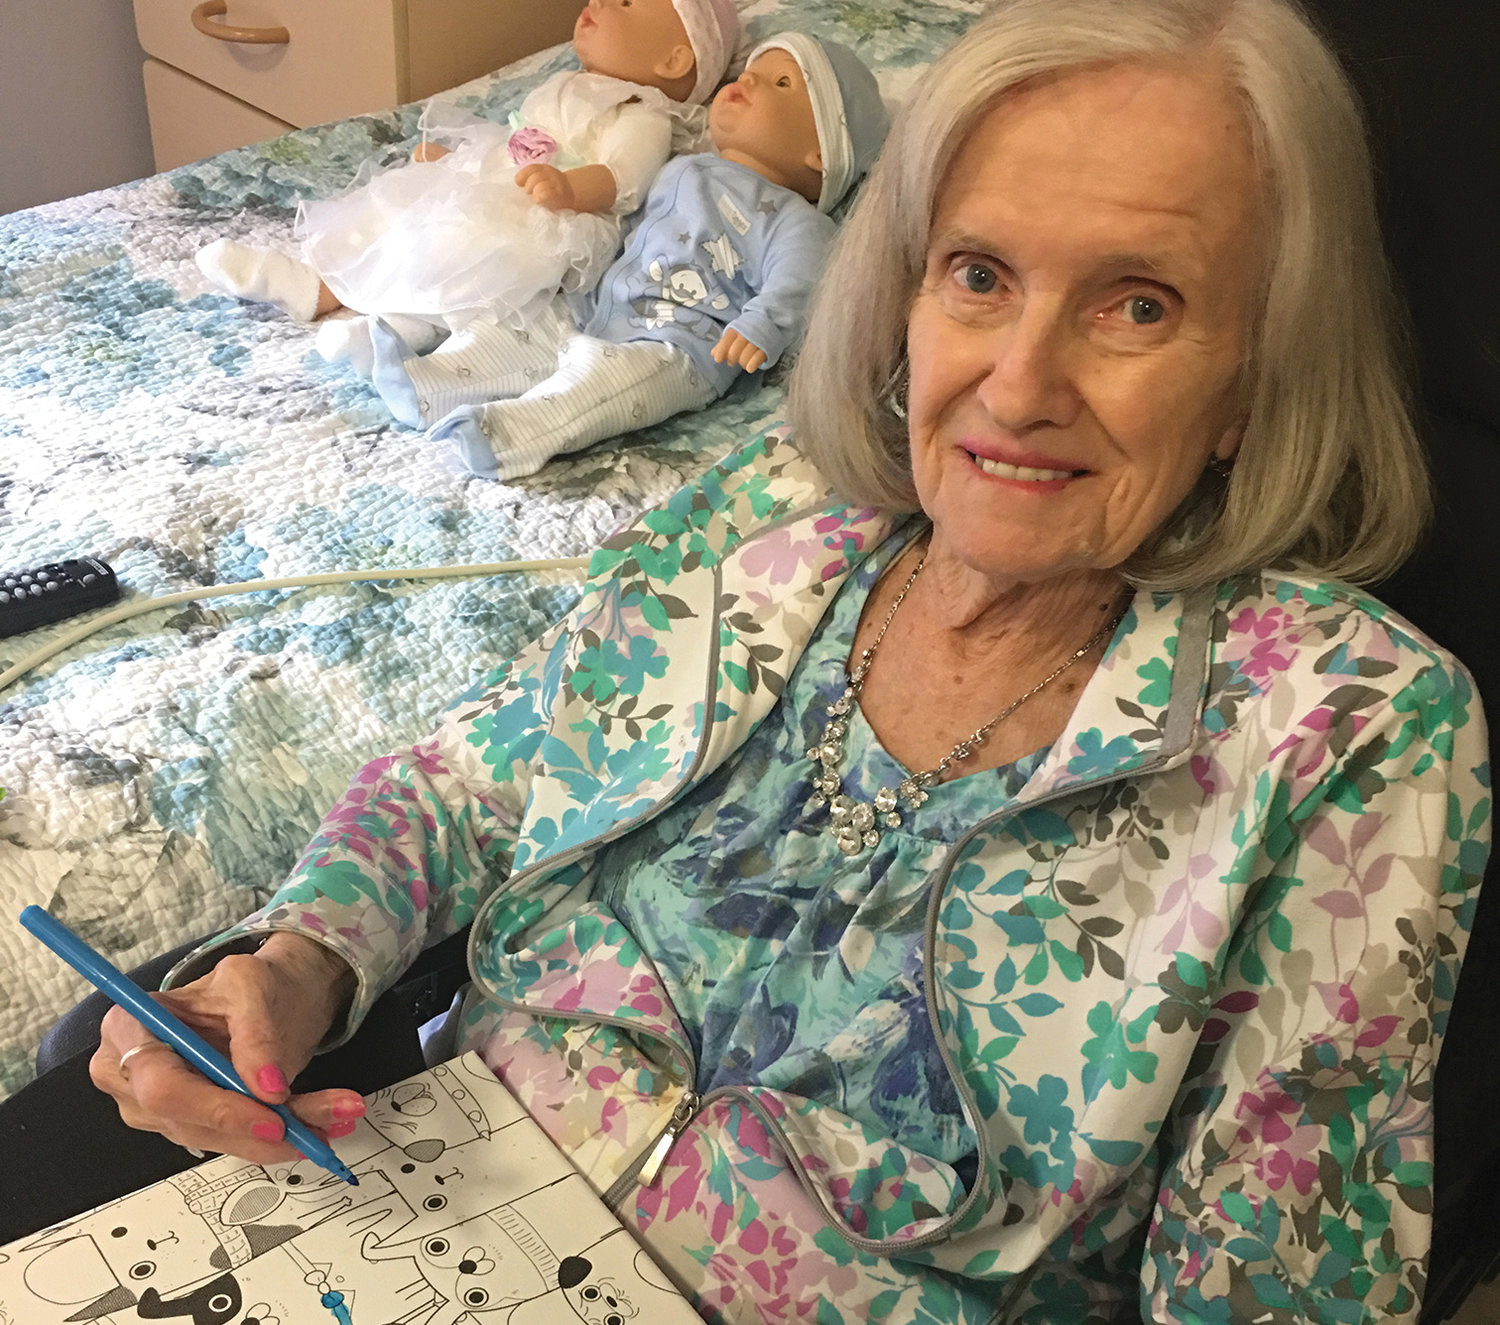 Gail Elliot's mother, Peggy, passed away recently, but lived a quality life with dementia. Her room incorporated Montessori ideas, with memory cues available as needed and ready activities that connected her interests to her abilities.